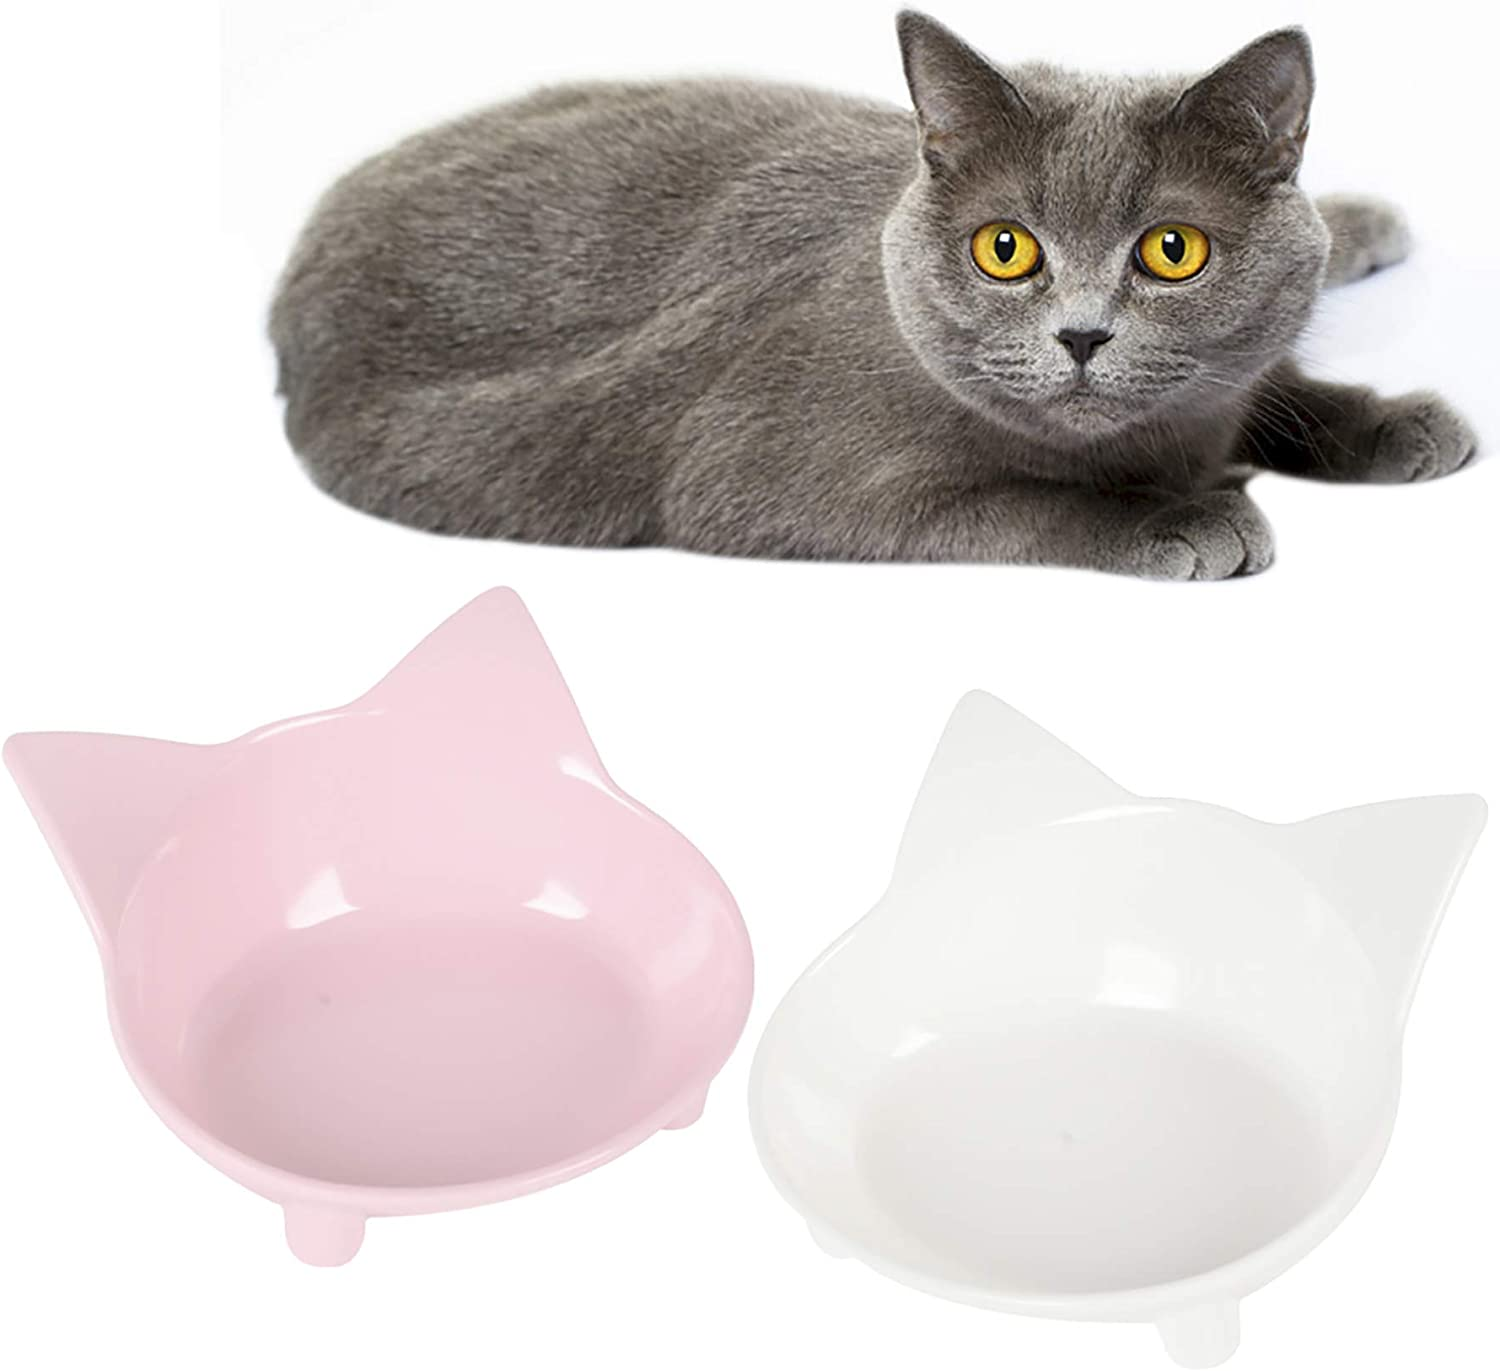 Cotill Cat Bowls, Non Slip Multi-Purpose Dog Cat Food Bowls, Reliefs Whisker Fatigue Wide Cat Dish, Shallow Feeder Bowls Pet Water Bowl for Small Dogs Cats and Pets